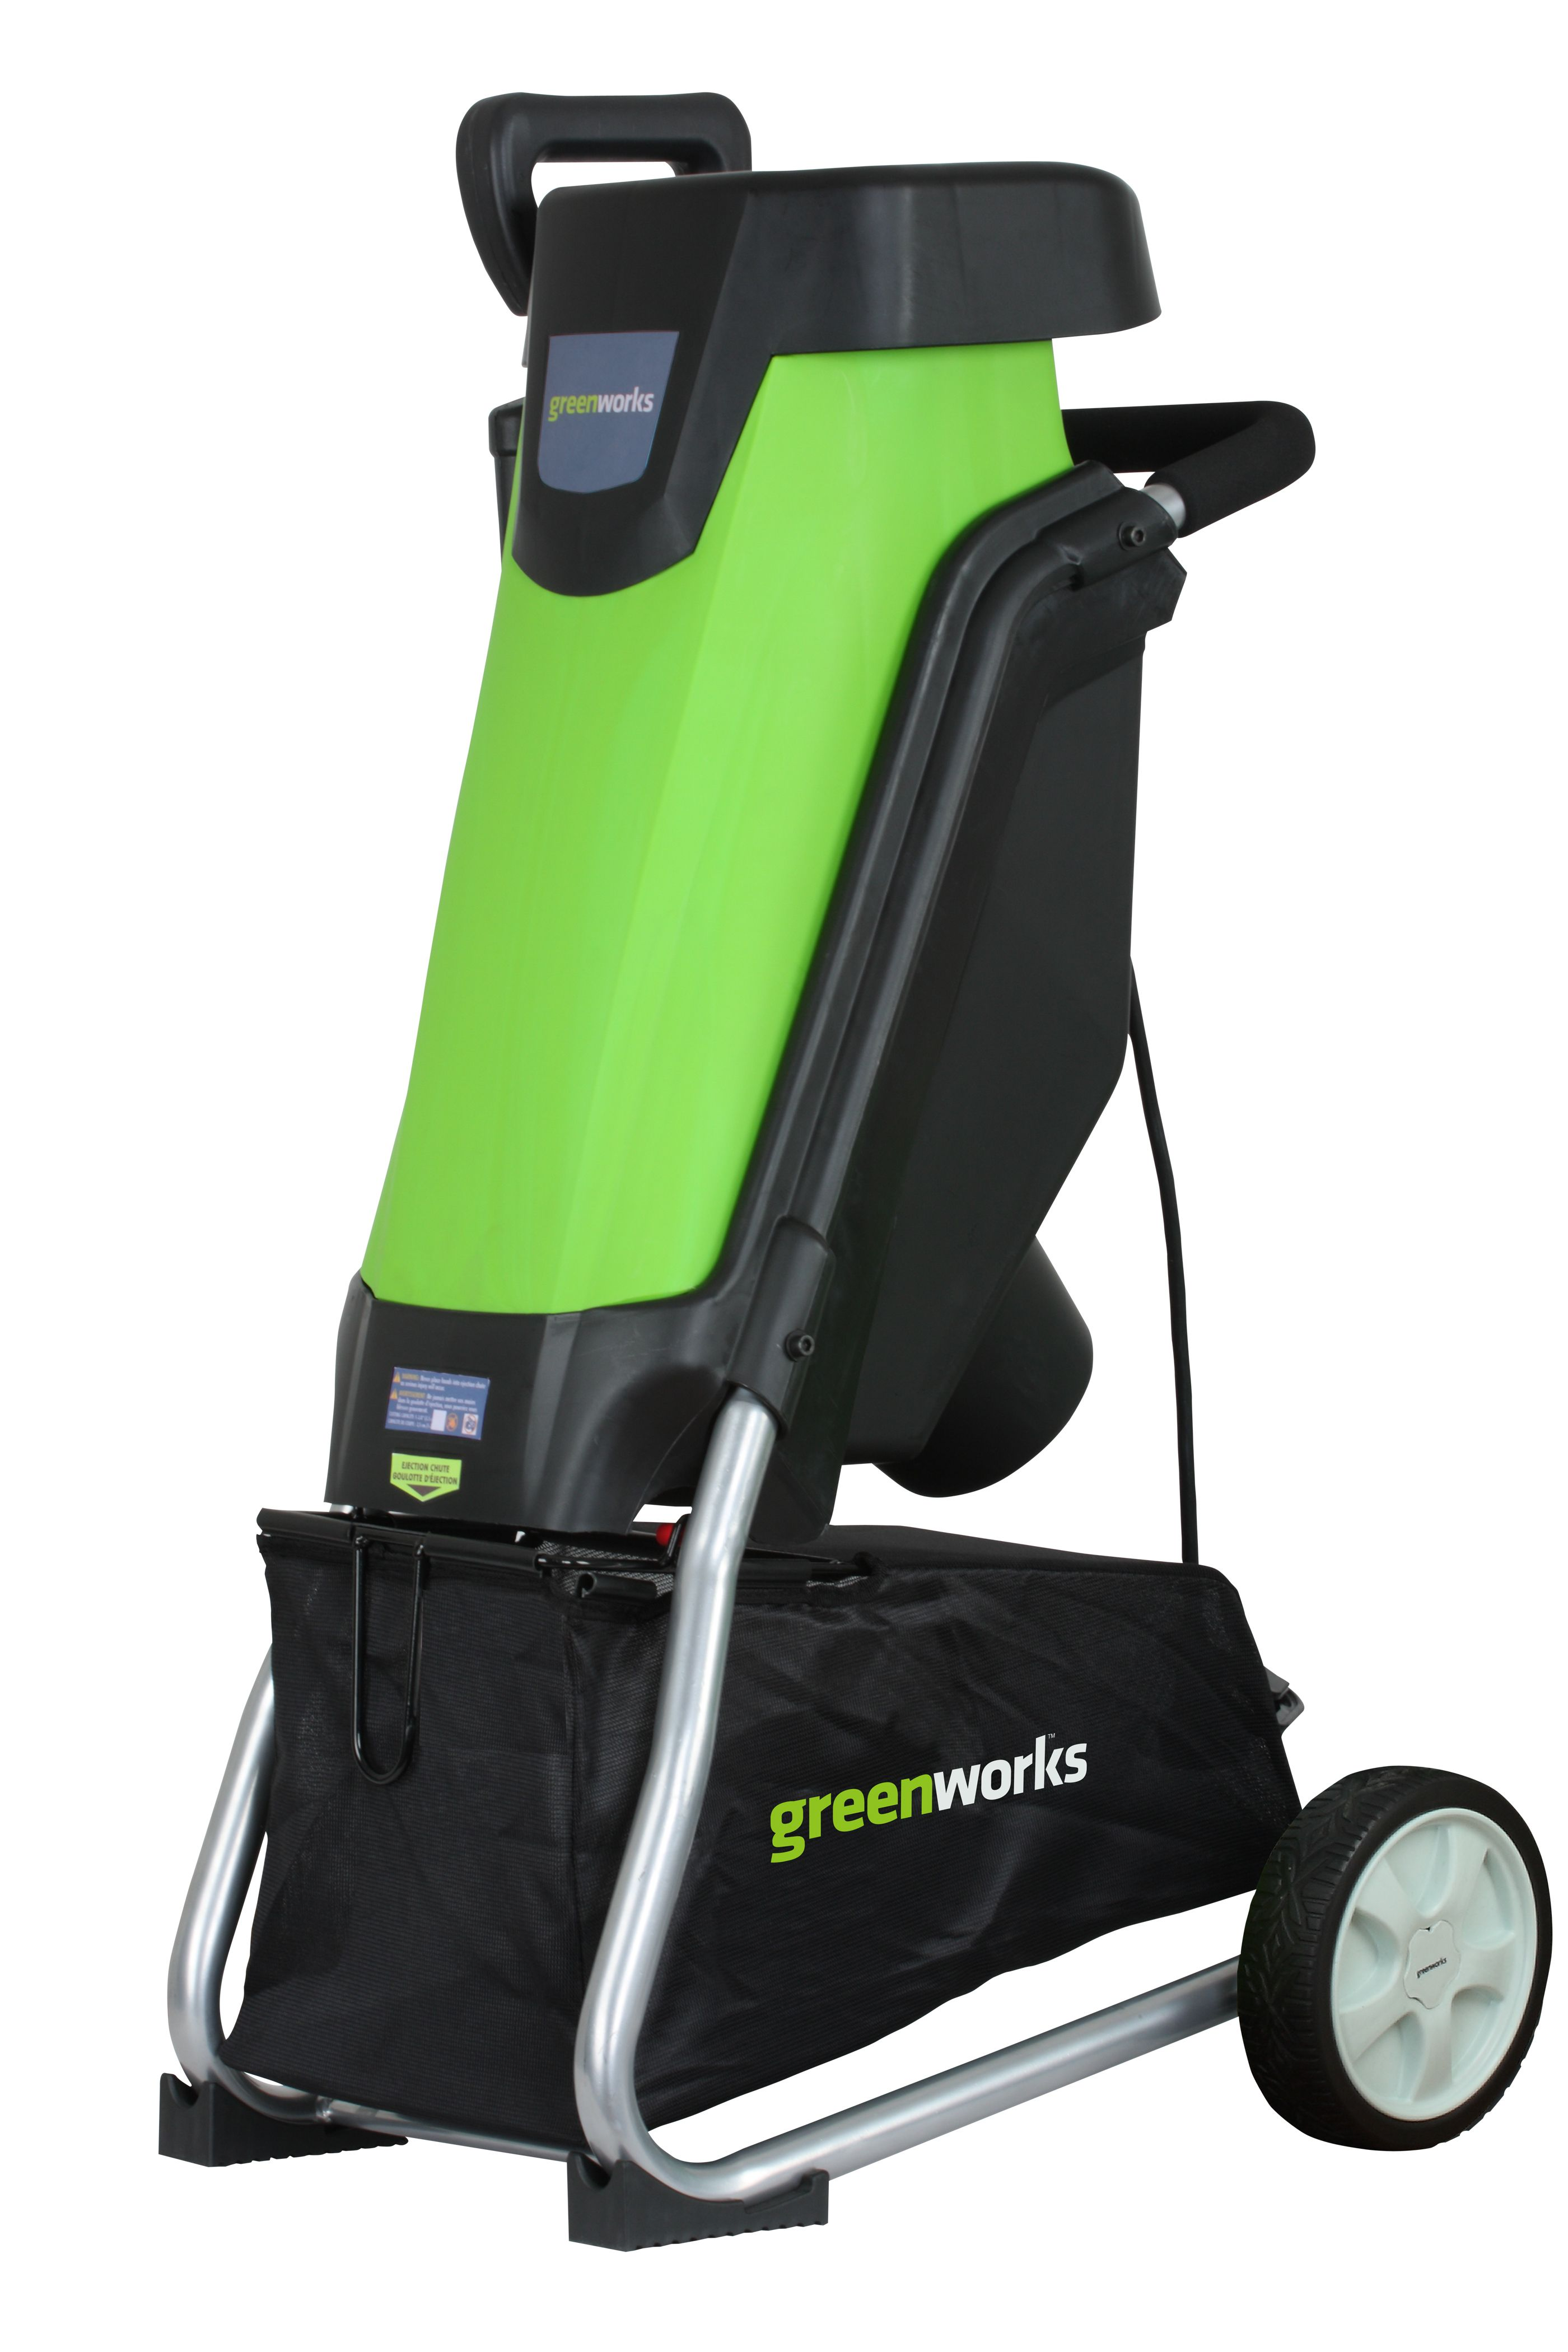 Greenworks wood chipper chippers